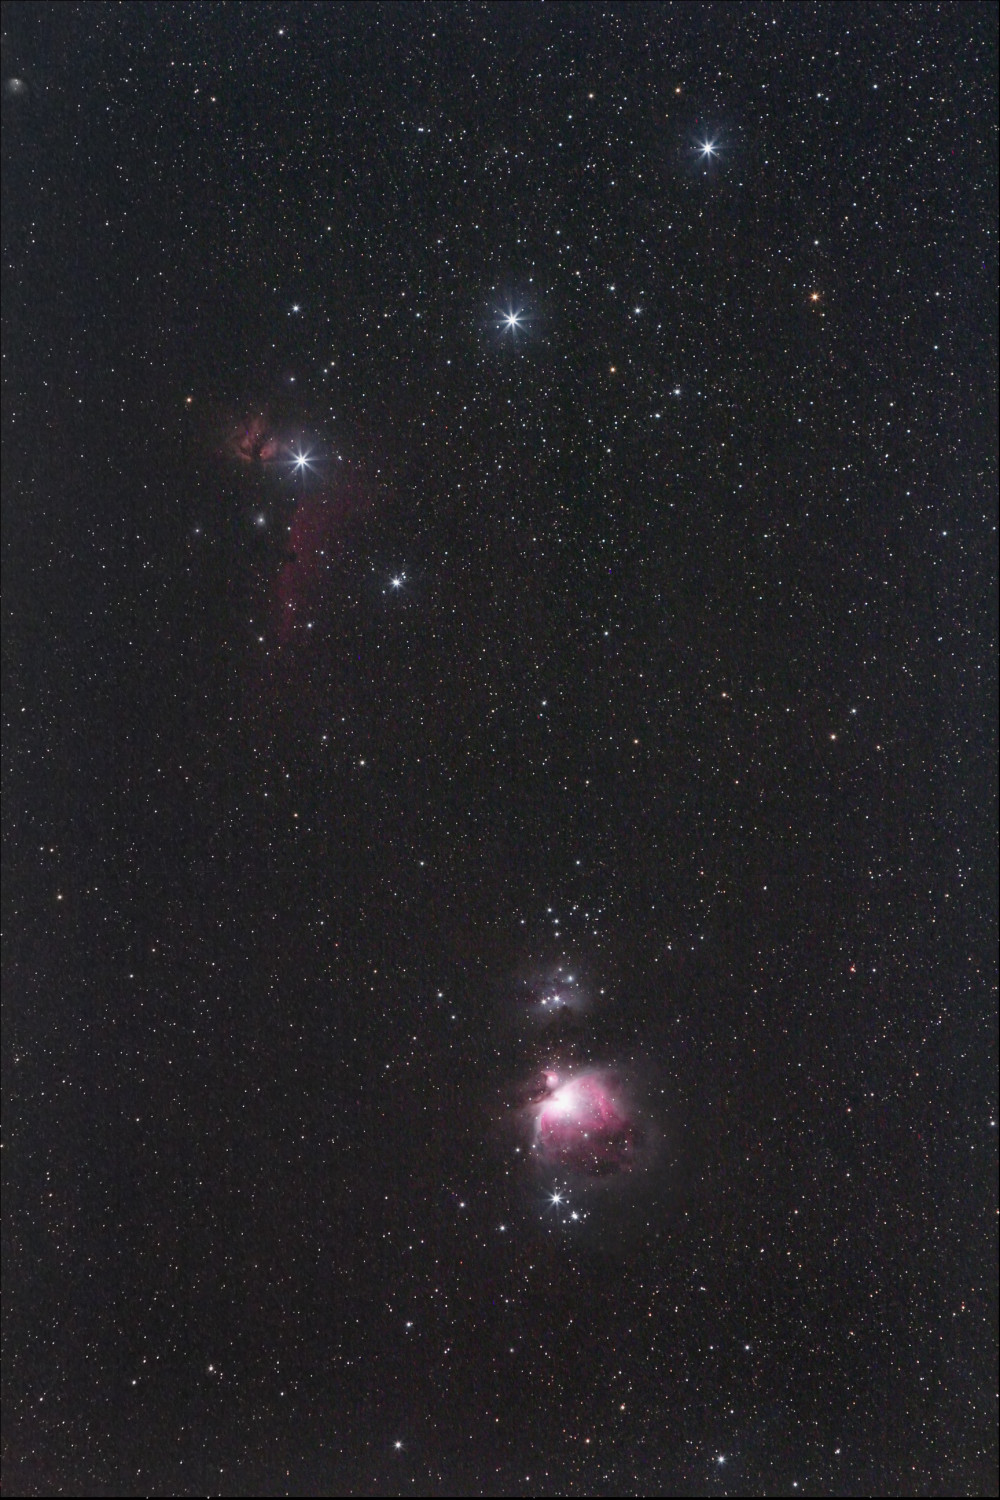 Star field with three bright stars in a row and a small but distinct pink nebula below.